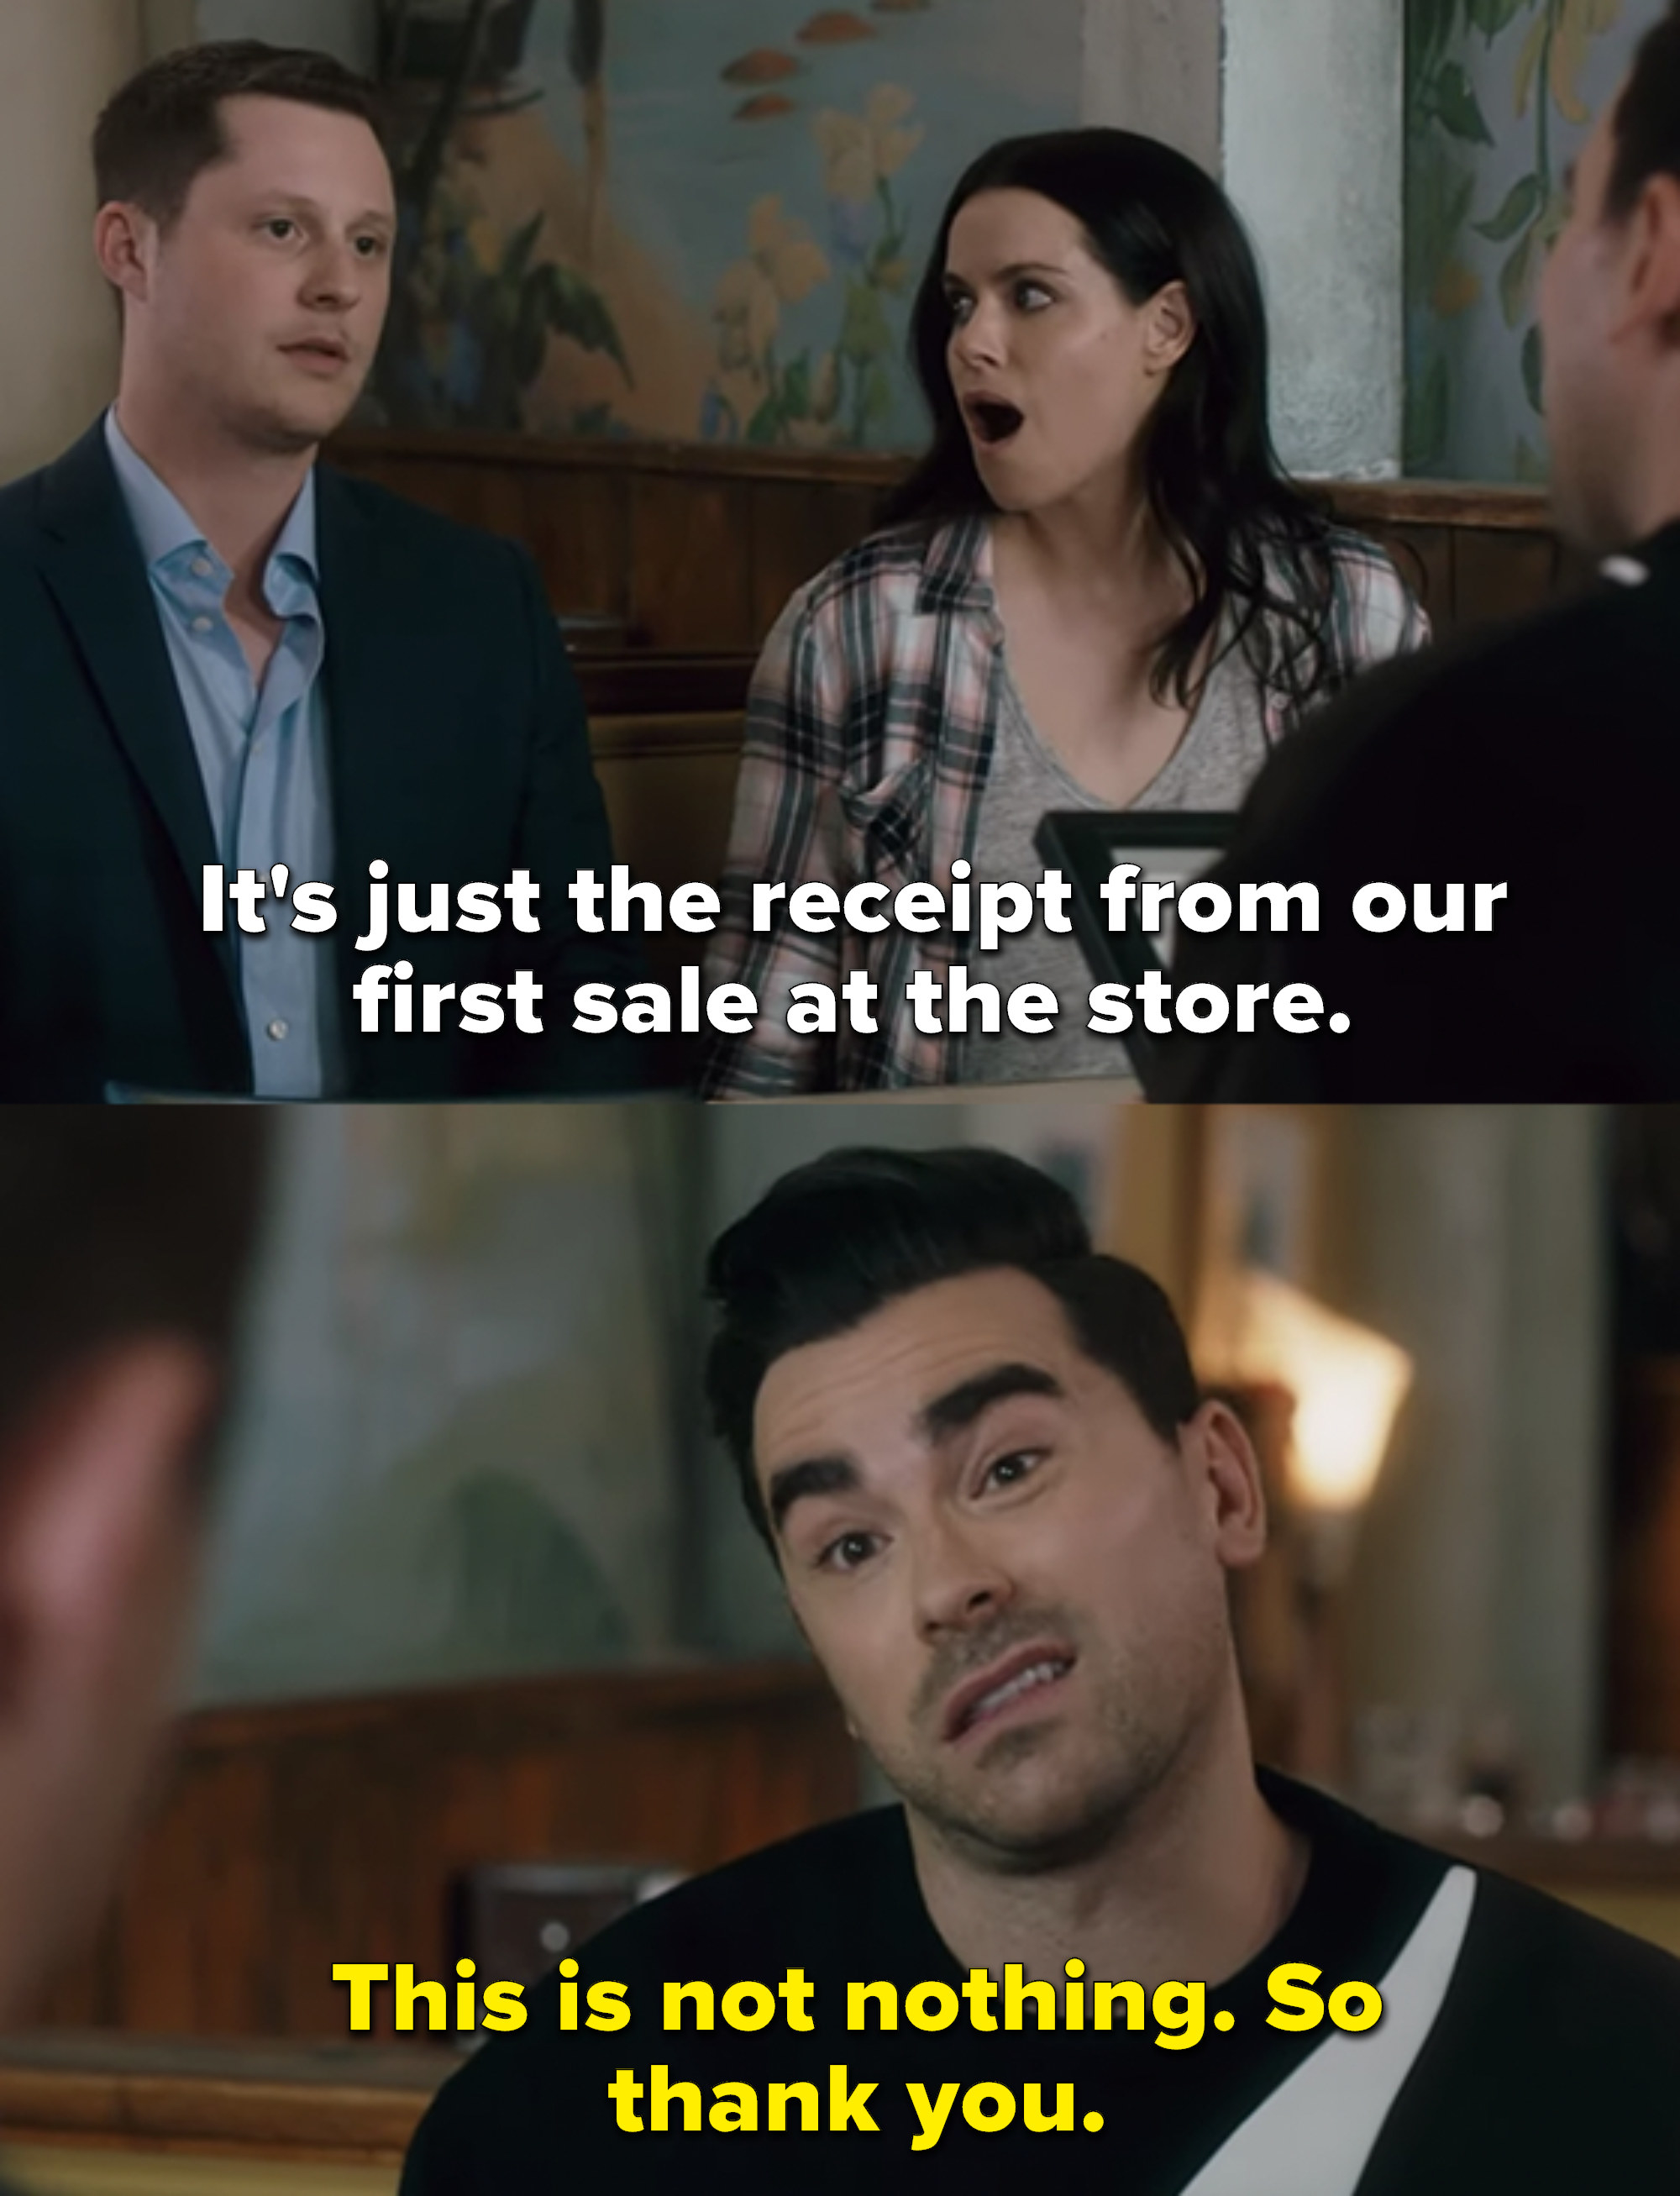 Patrick says it's a receipt from their first sale at the store, and David says it's not nothing and thanks him